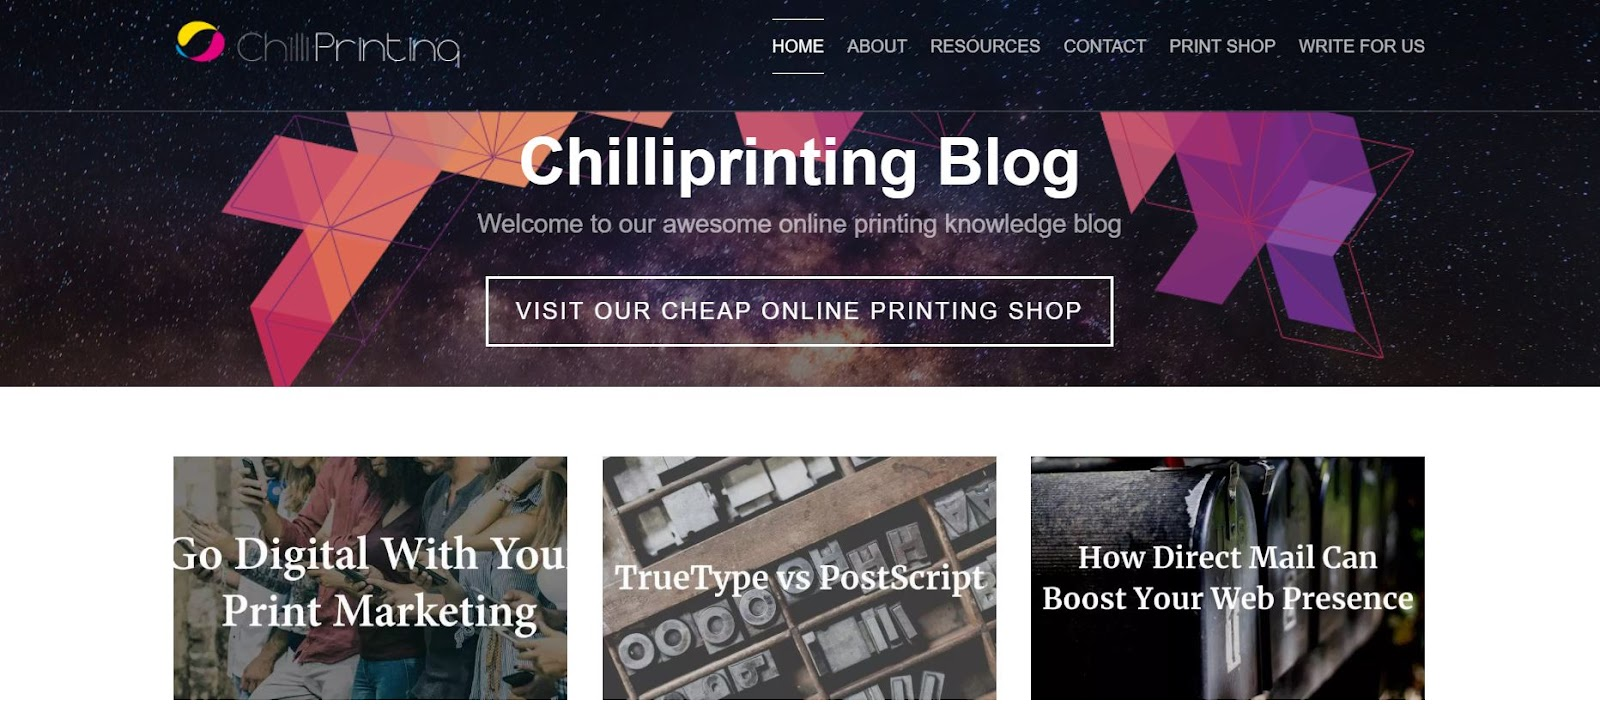 Chilliprinting - Top Graphic Design Blogs